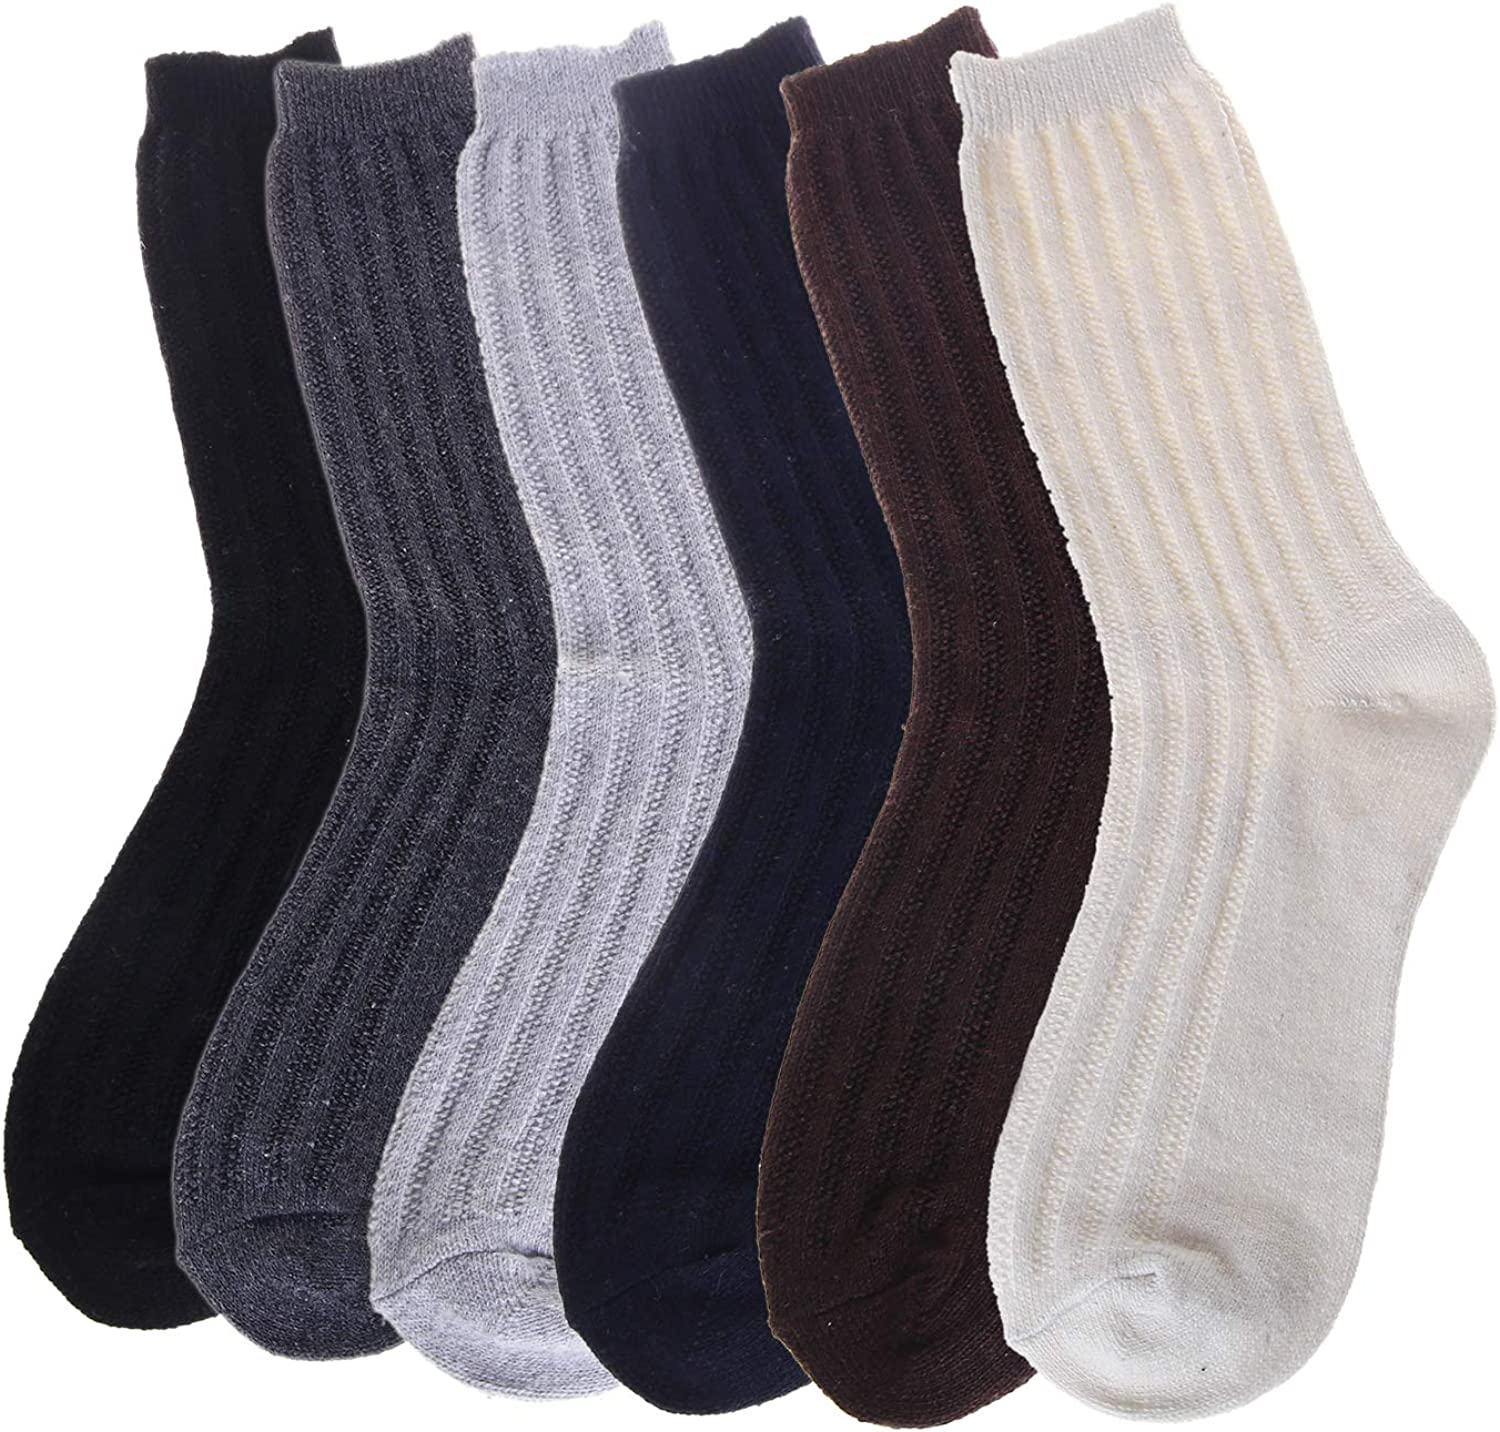 6 Pairs Wool Socks Mens Winter Warm Thick Soft Casual Knit Socks